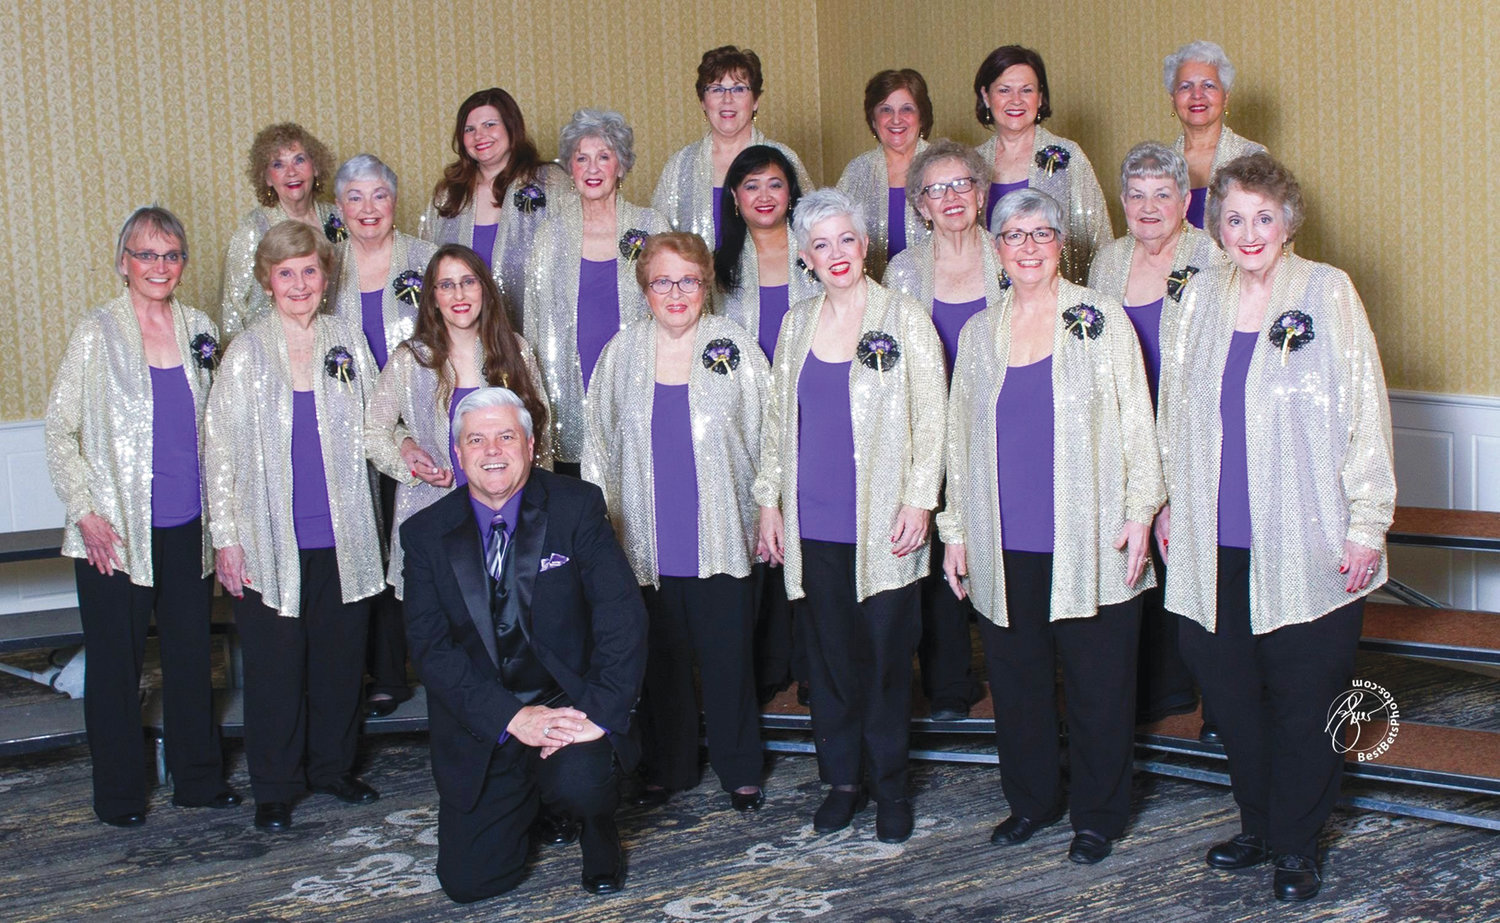 BRINGING HARMONY TO WARWICK: Harmony Heritage chorus, a Southern New England chapter of Harmony, Incorporated will perform in concert at the Warwick Public Library on Feb. 23 at 2 p.m.